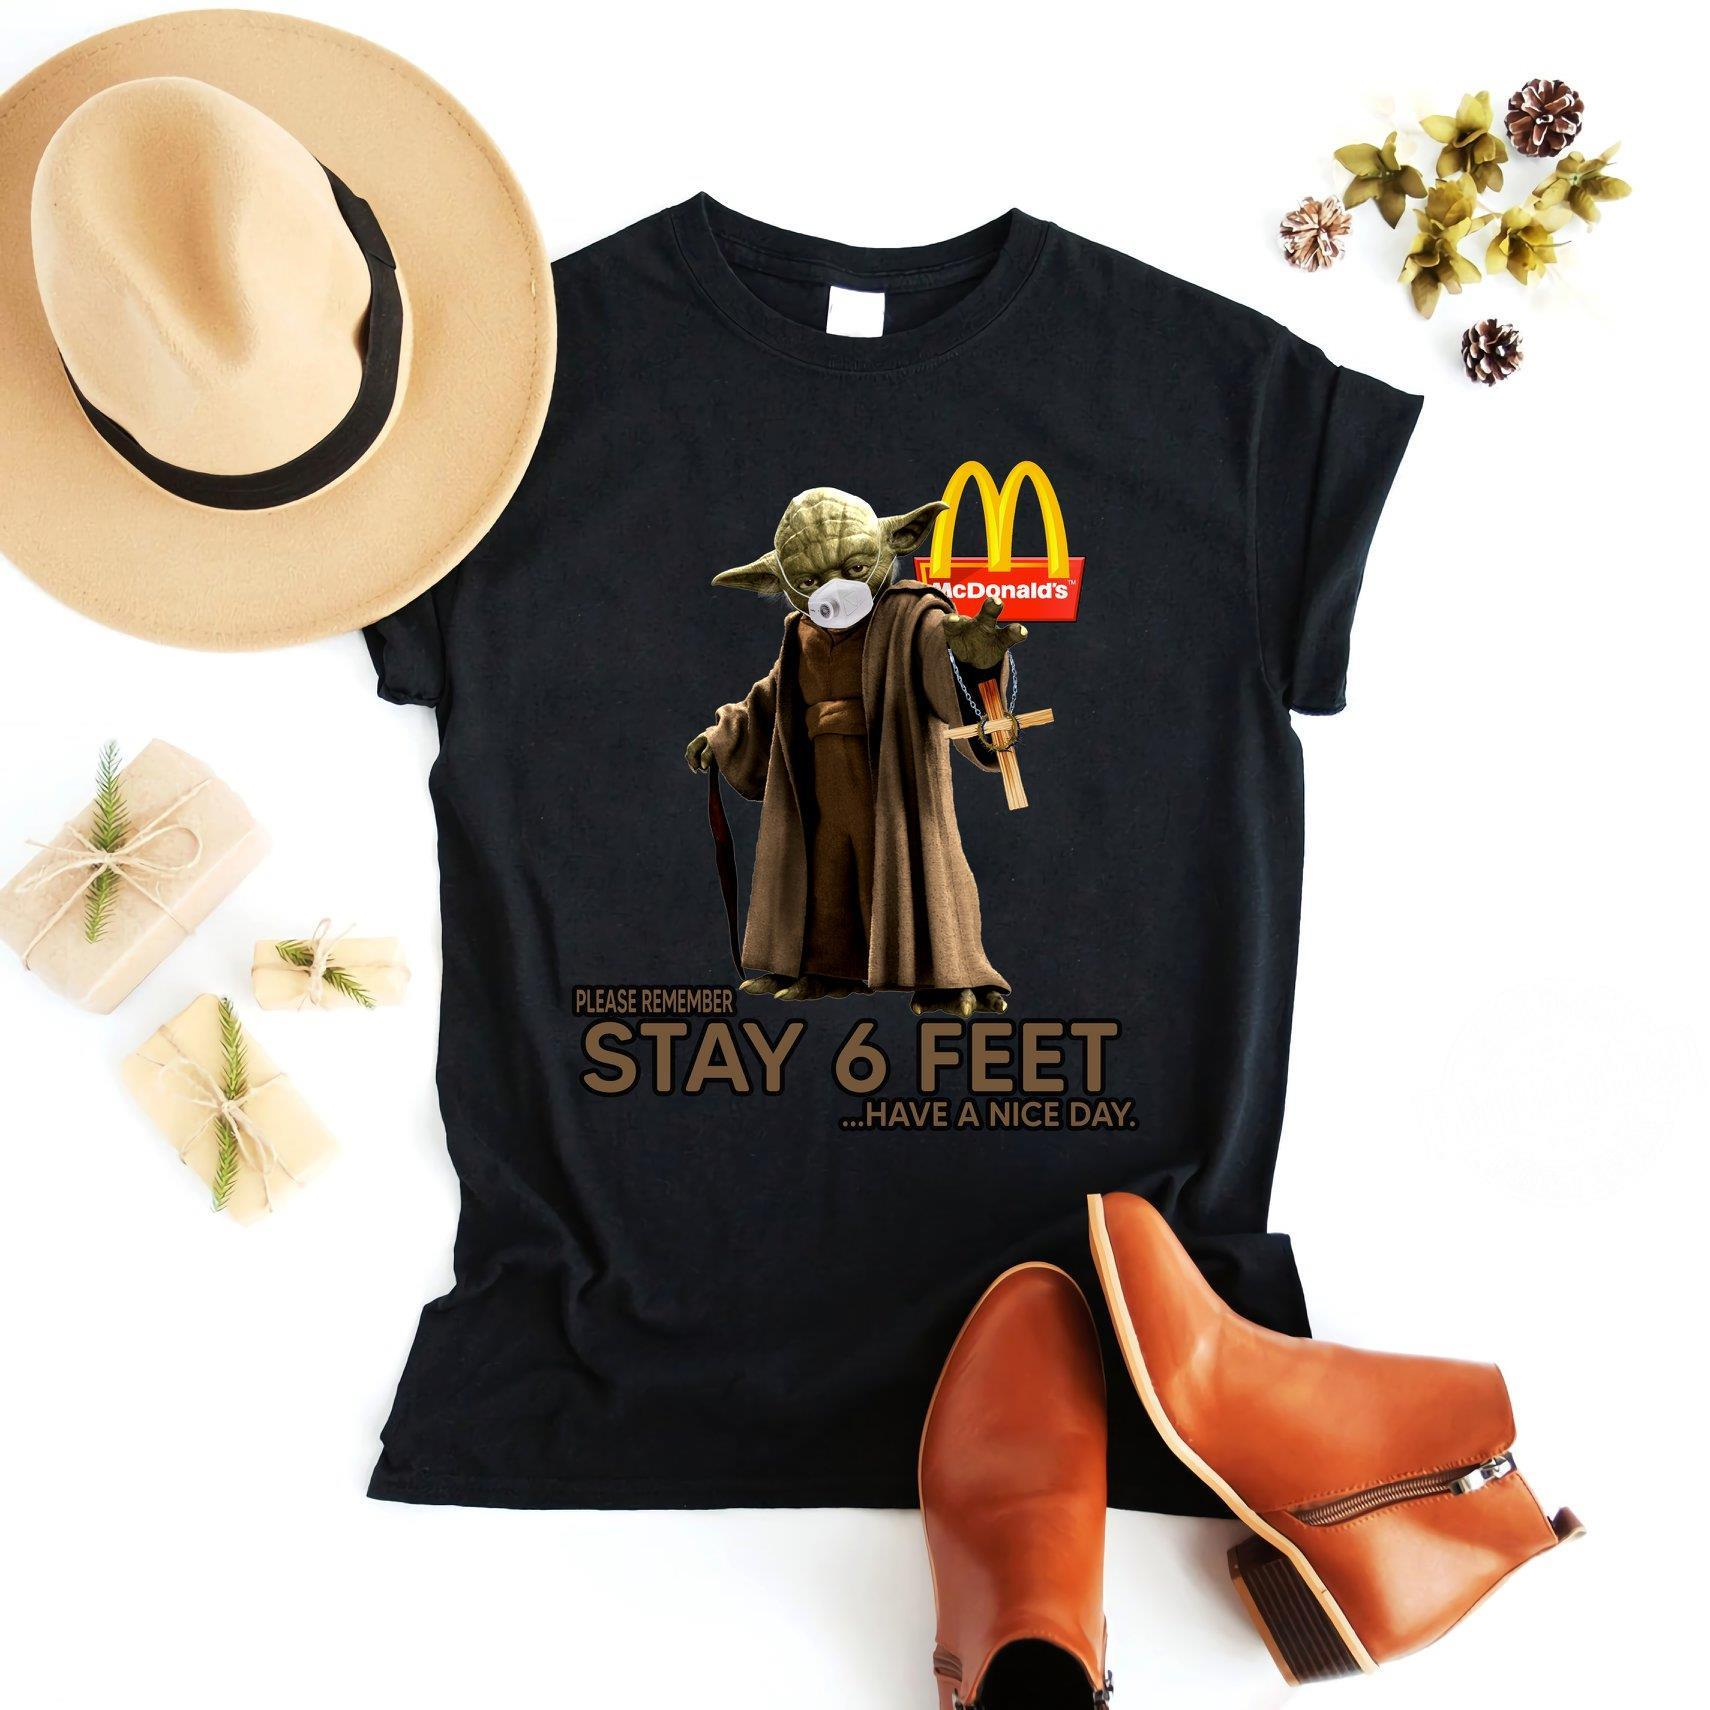 Please remember stay 6 feet have a nice day shirt